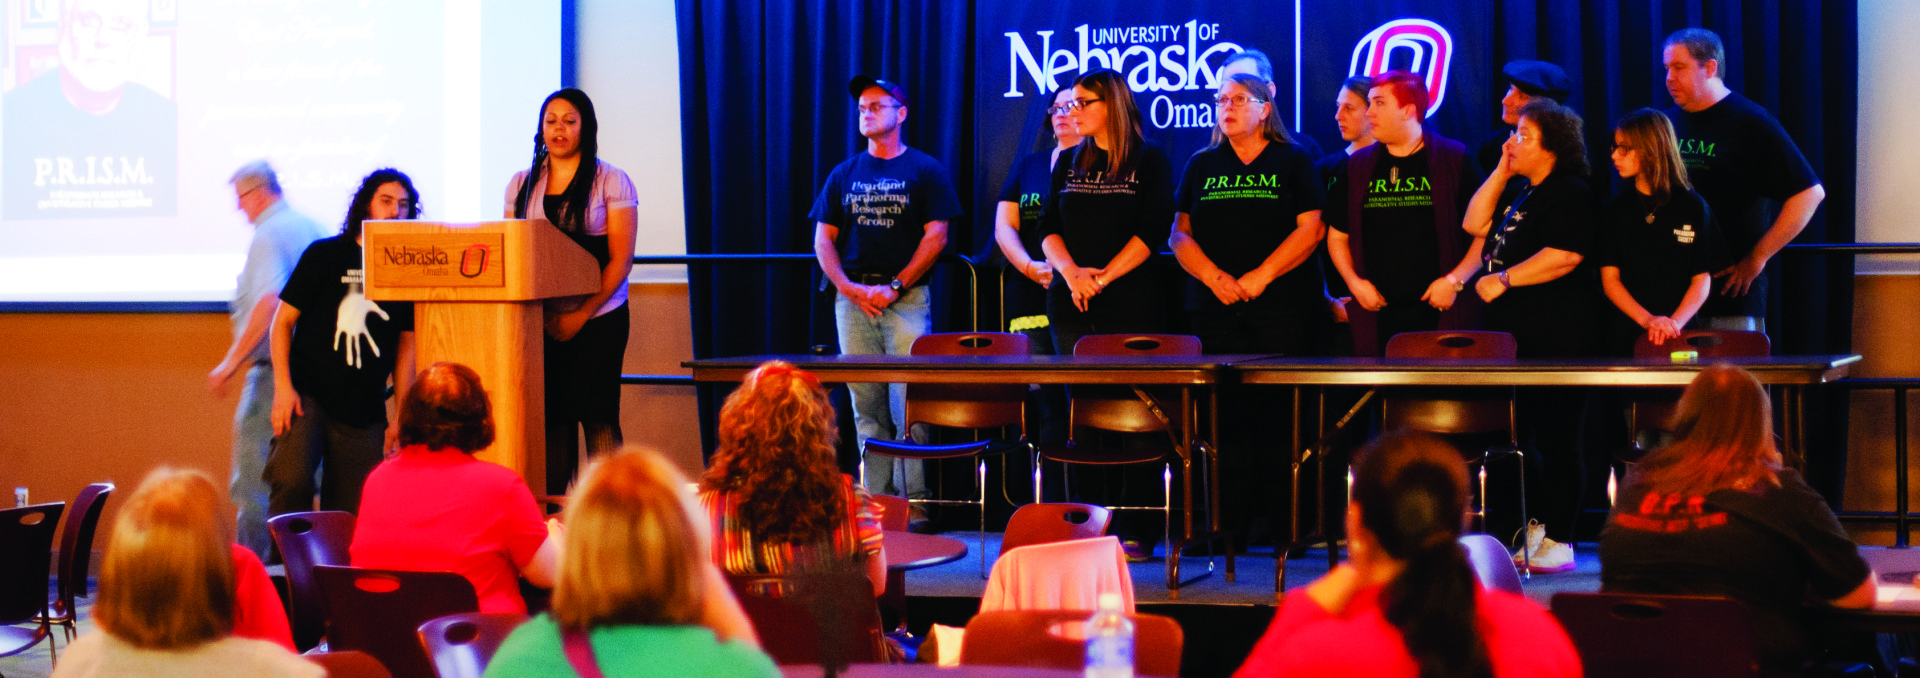 Paranormal Society hosts summit meeting, ghost hunt